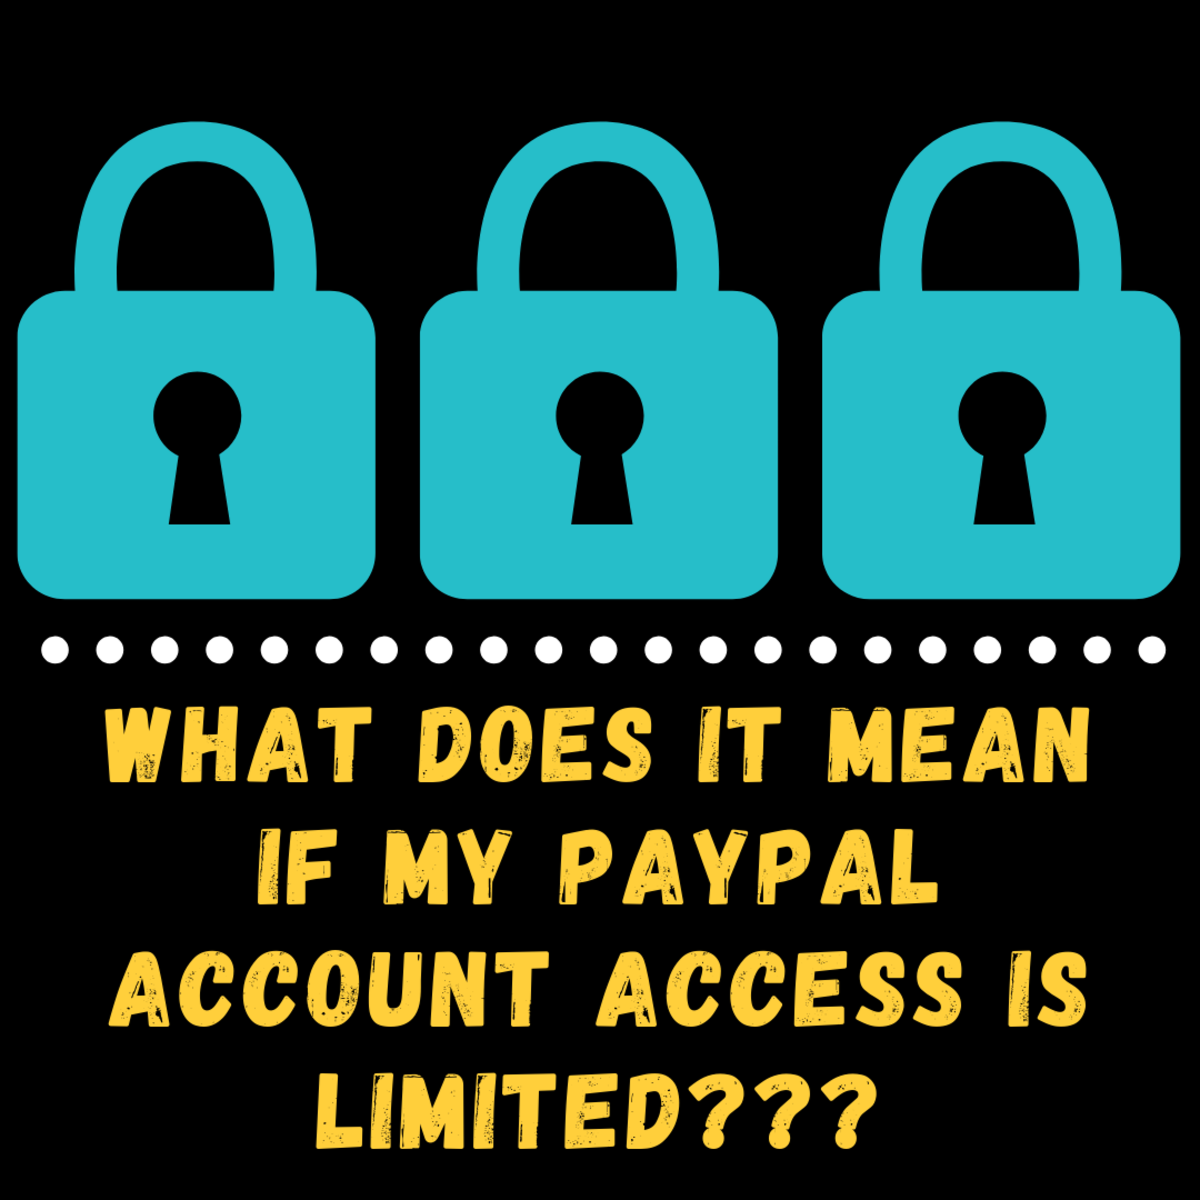 Figure out what to do if your PayPal account access is limited.